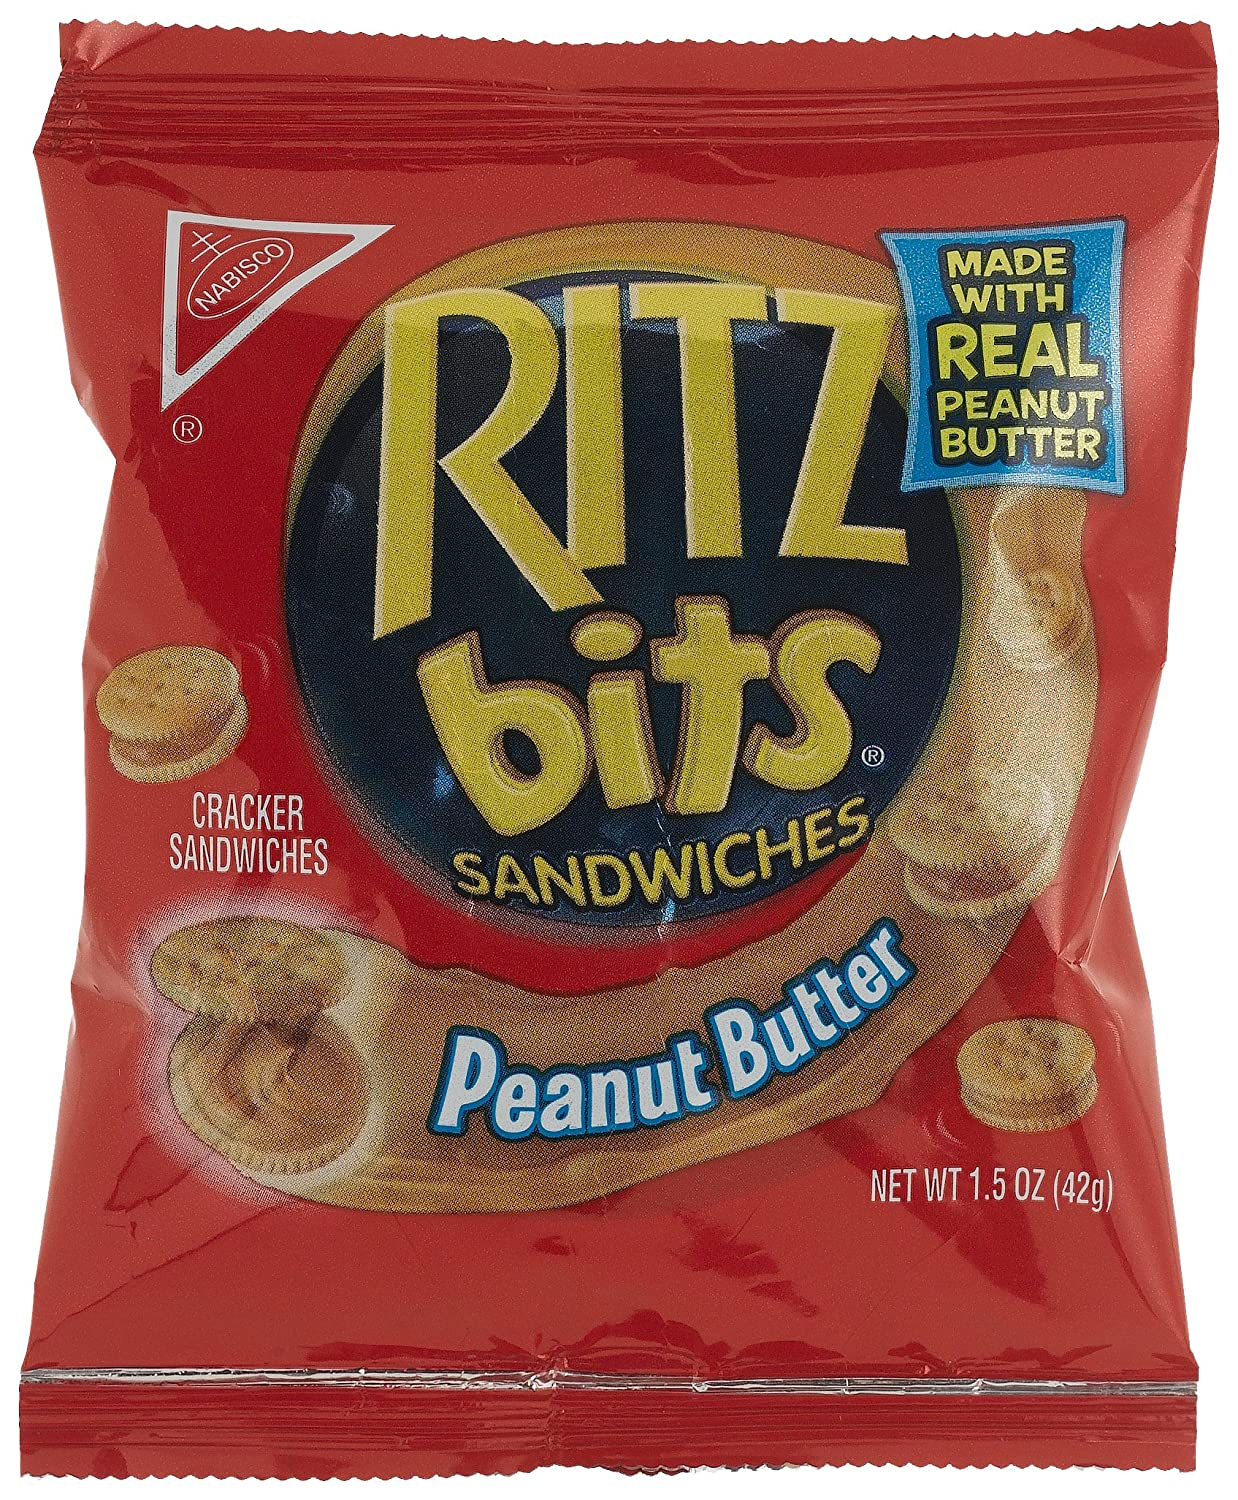 B000YTB1D2 Ritz Bits Peanut Butter Sandwiches, 1.5-Ounce Single-Serve Packages (Pack of 60) A1BXuAf5xpS